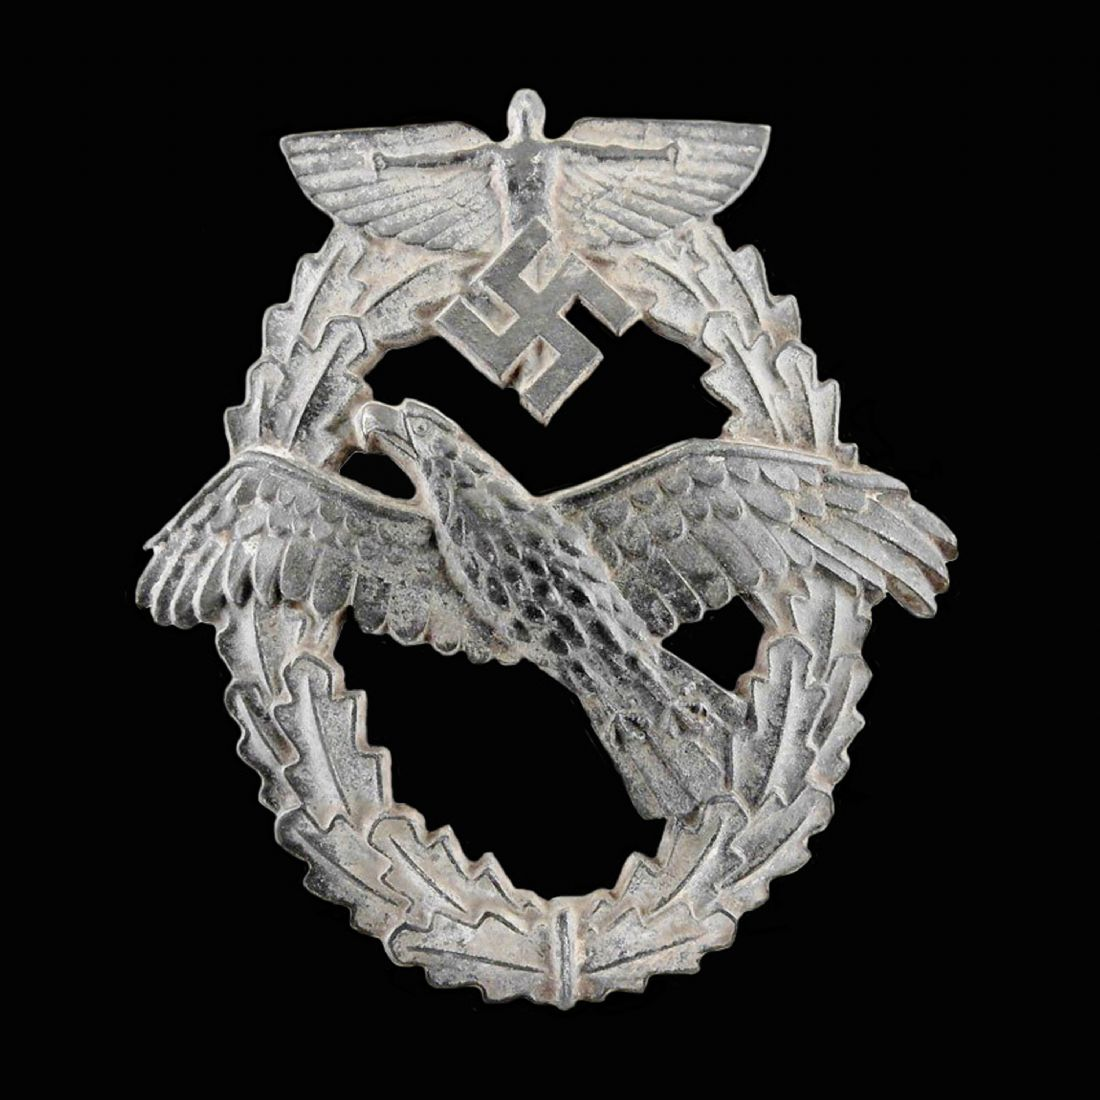 Chris Langley | German NSFK Motor Pilot Badge 1936-1945